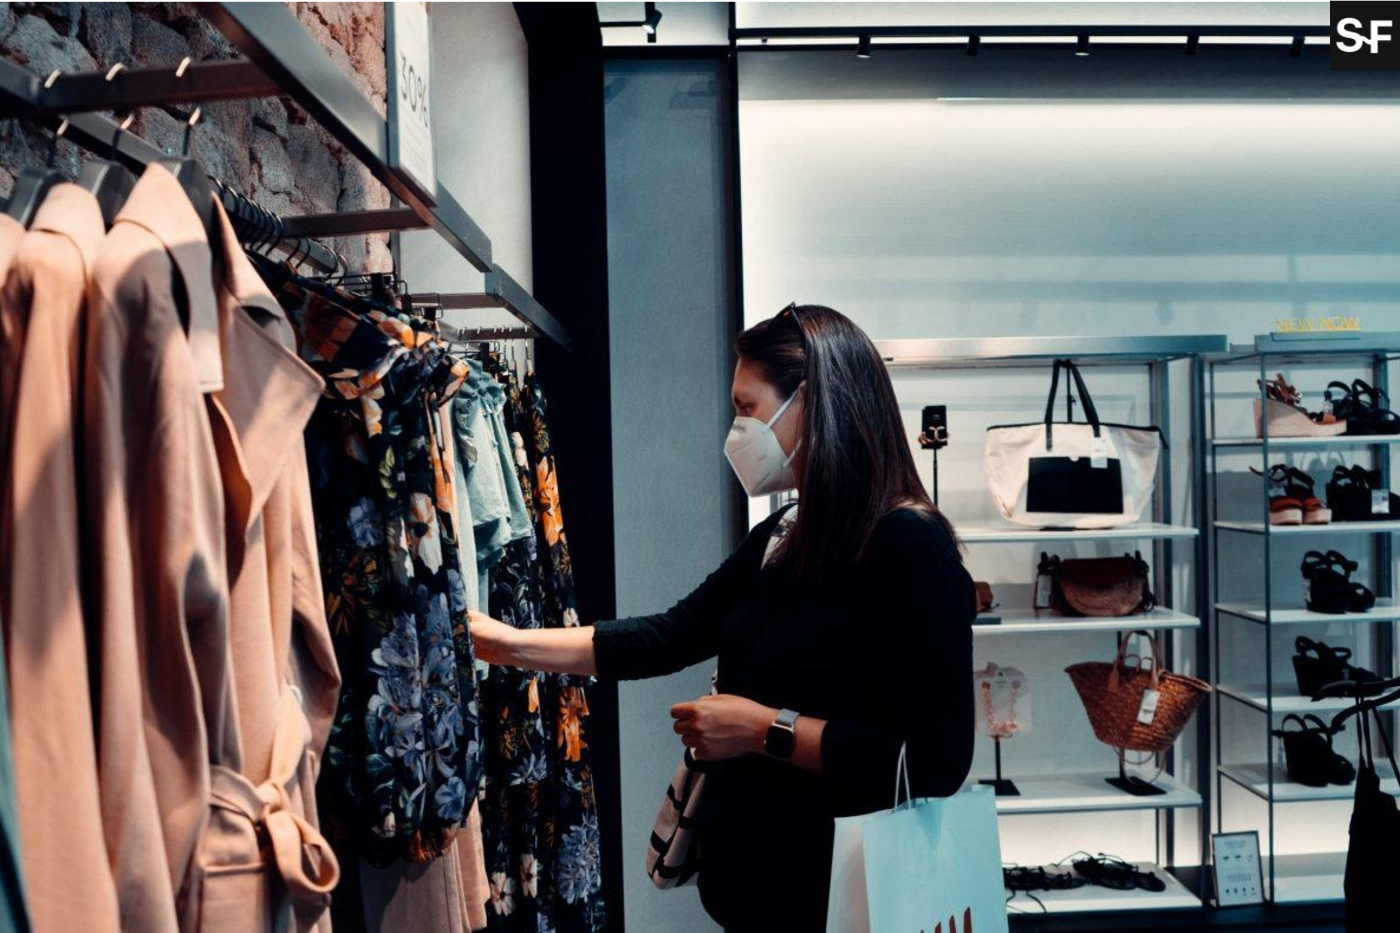 fashion-trends-post-covid-19-how-the-industry-is-transforming-from-survival-to-revival